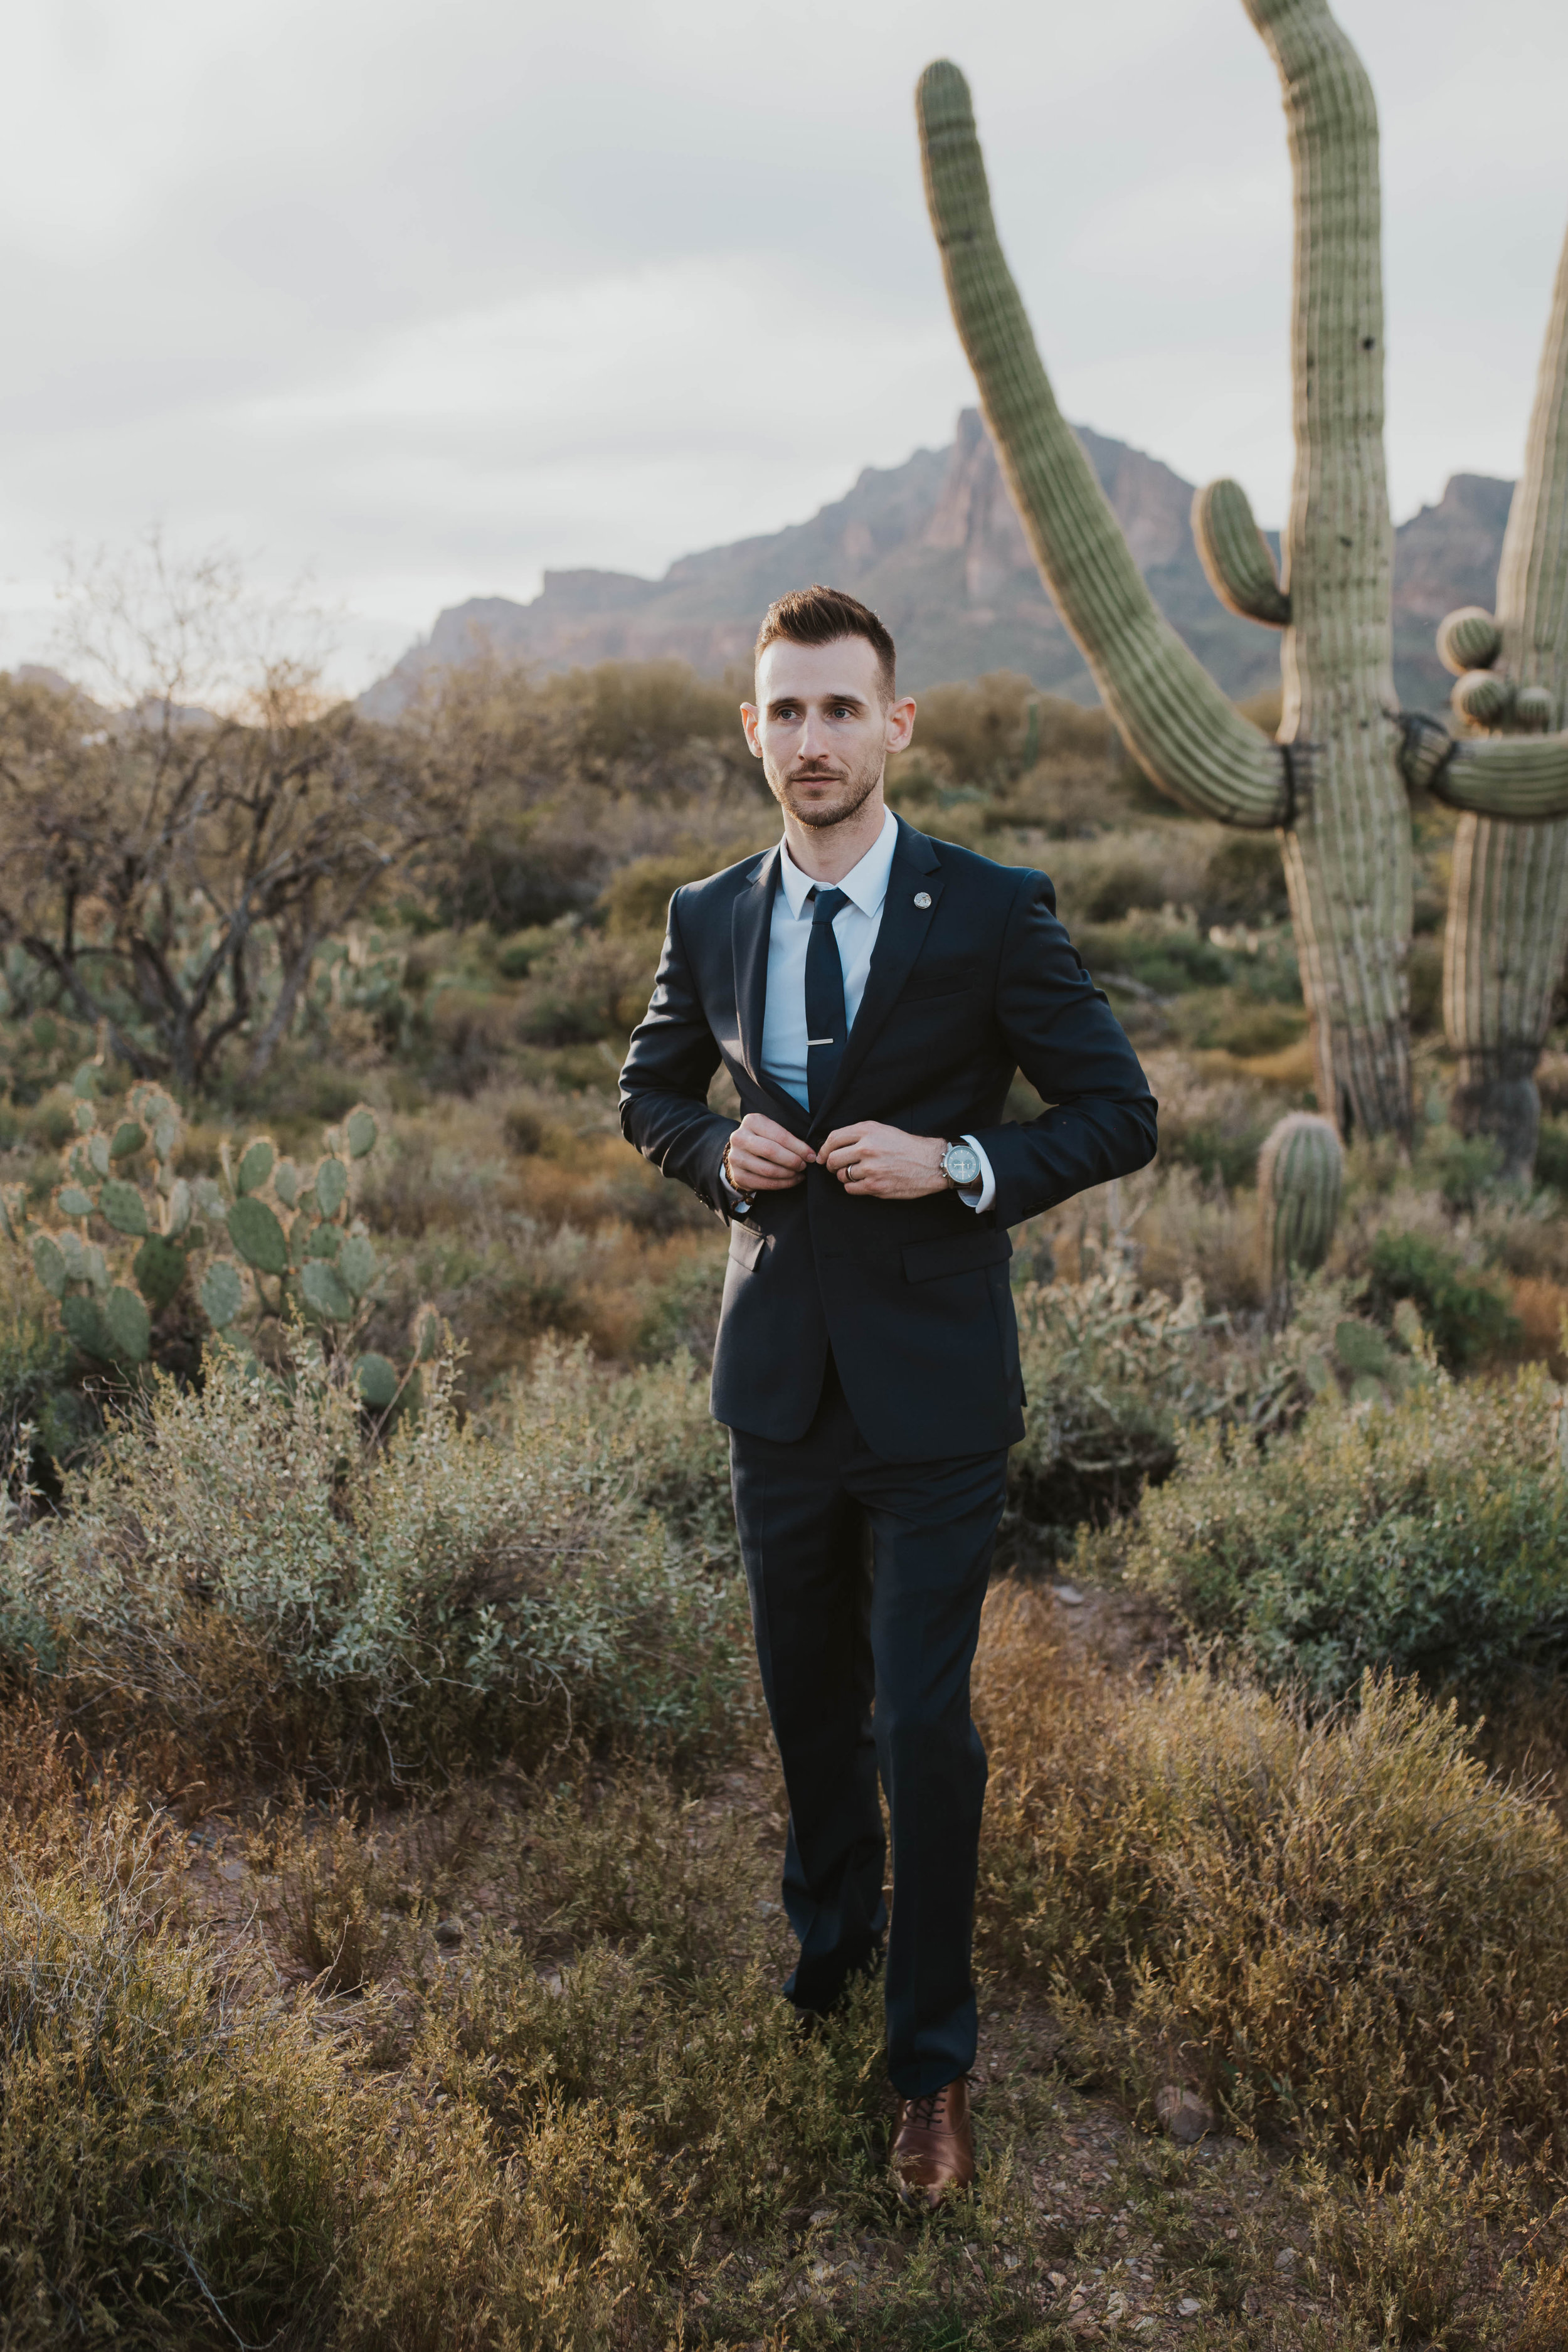 Desert Wedding at Tela Peralta - Arizona florist Phoenix scottsdale Mesa chandler Sedona Flagstaff Prescott - Groom